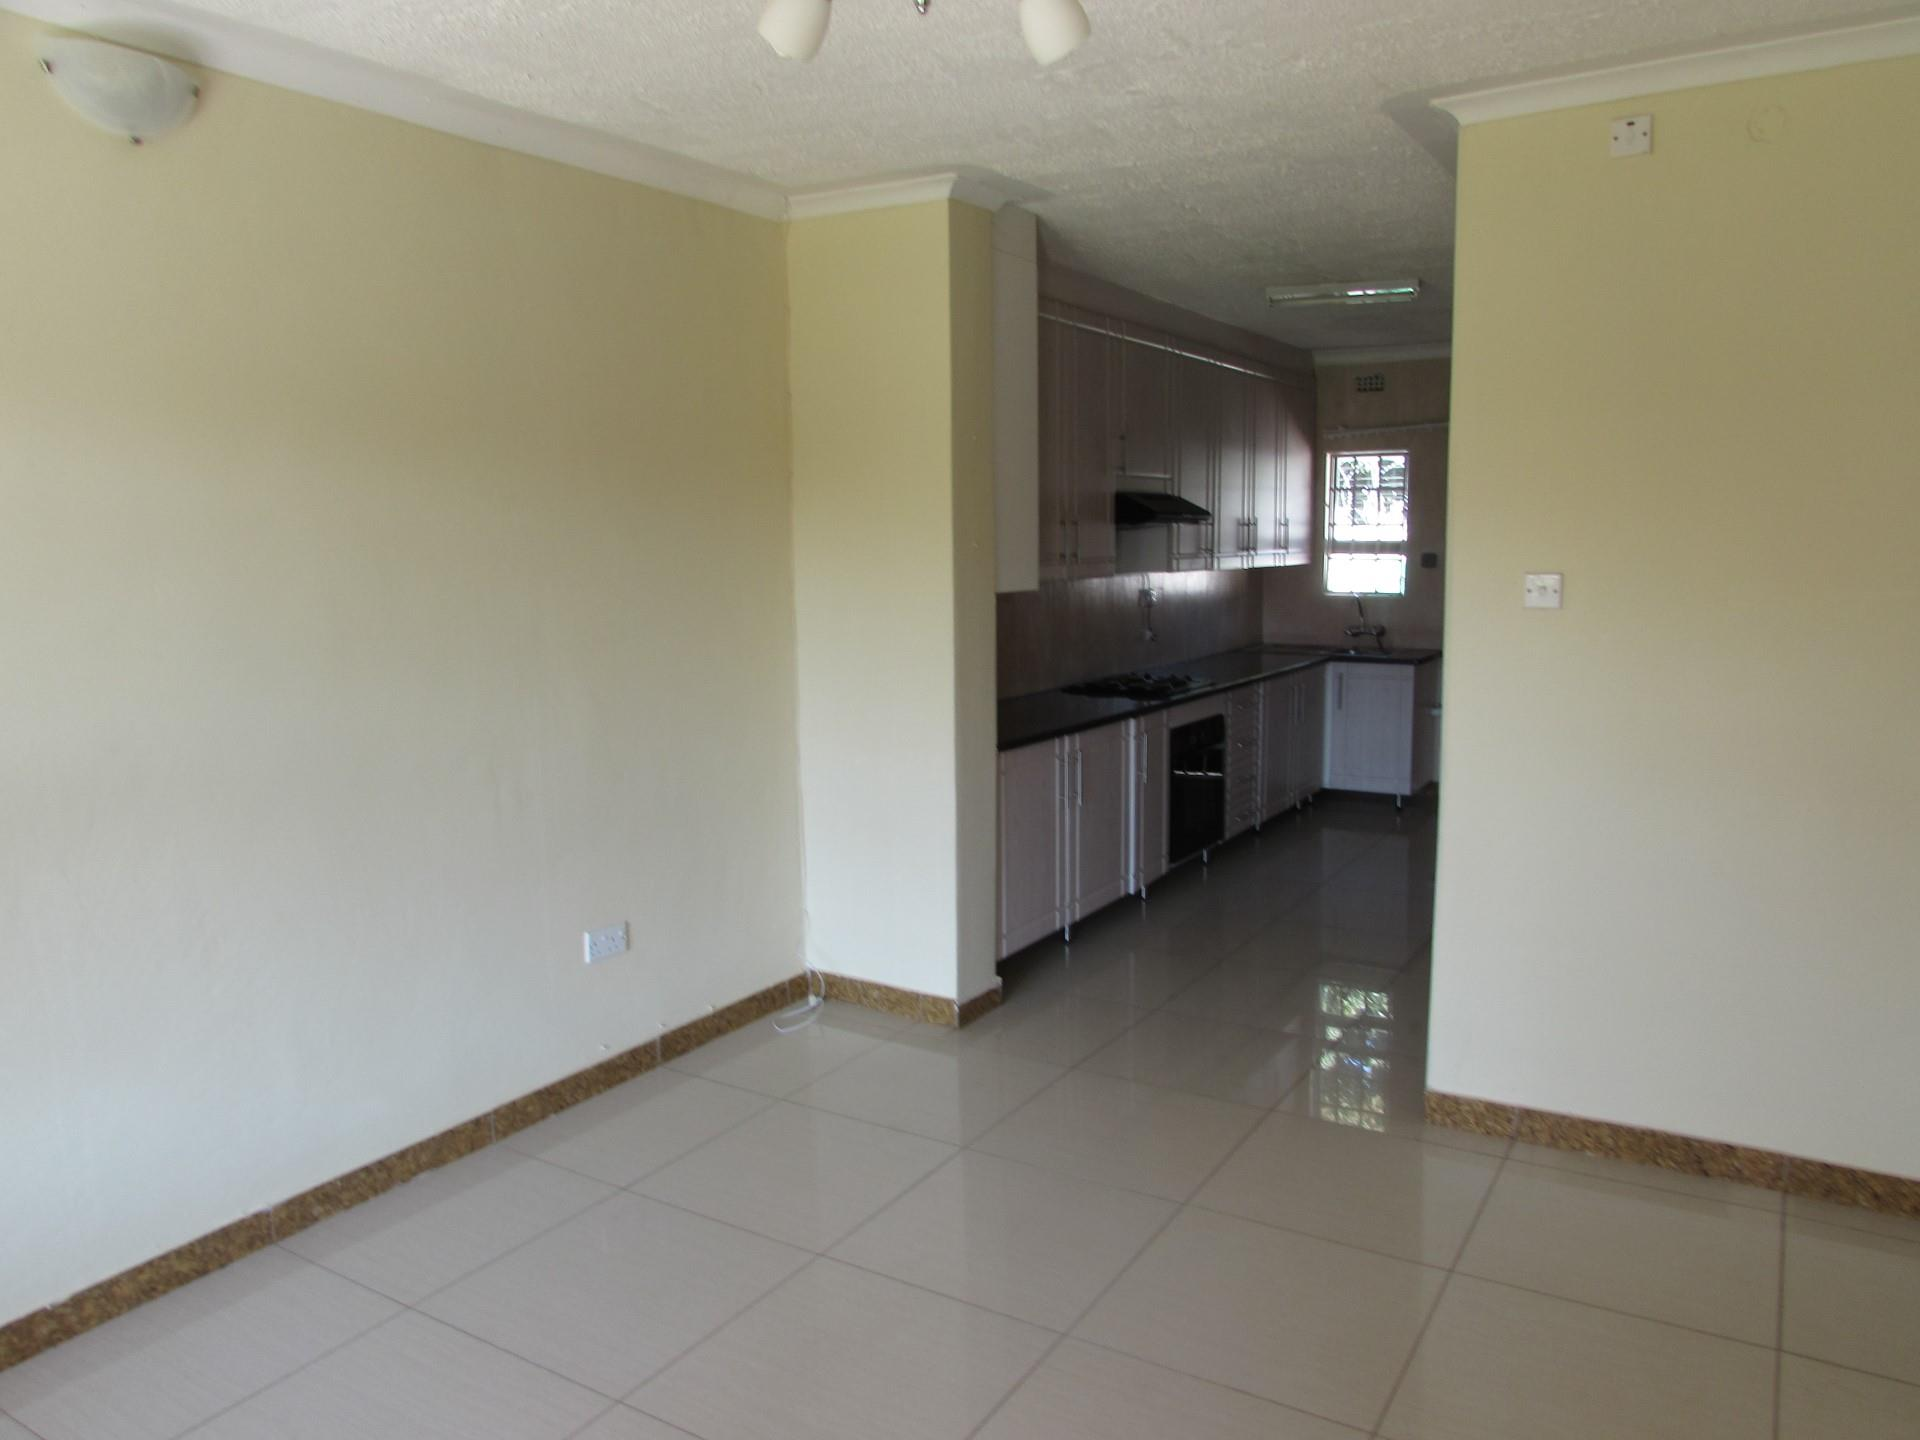 2 Bedroom House To Rent in Mogoditshane Central